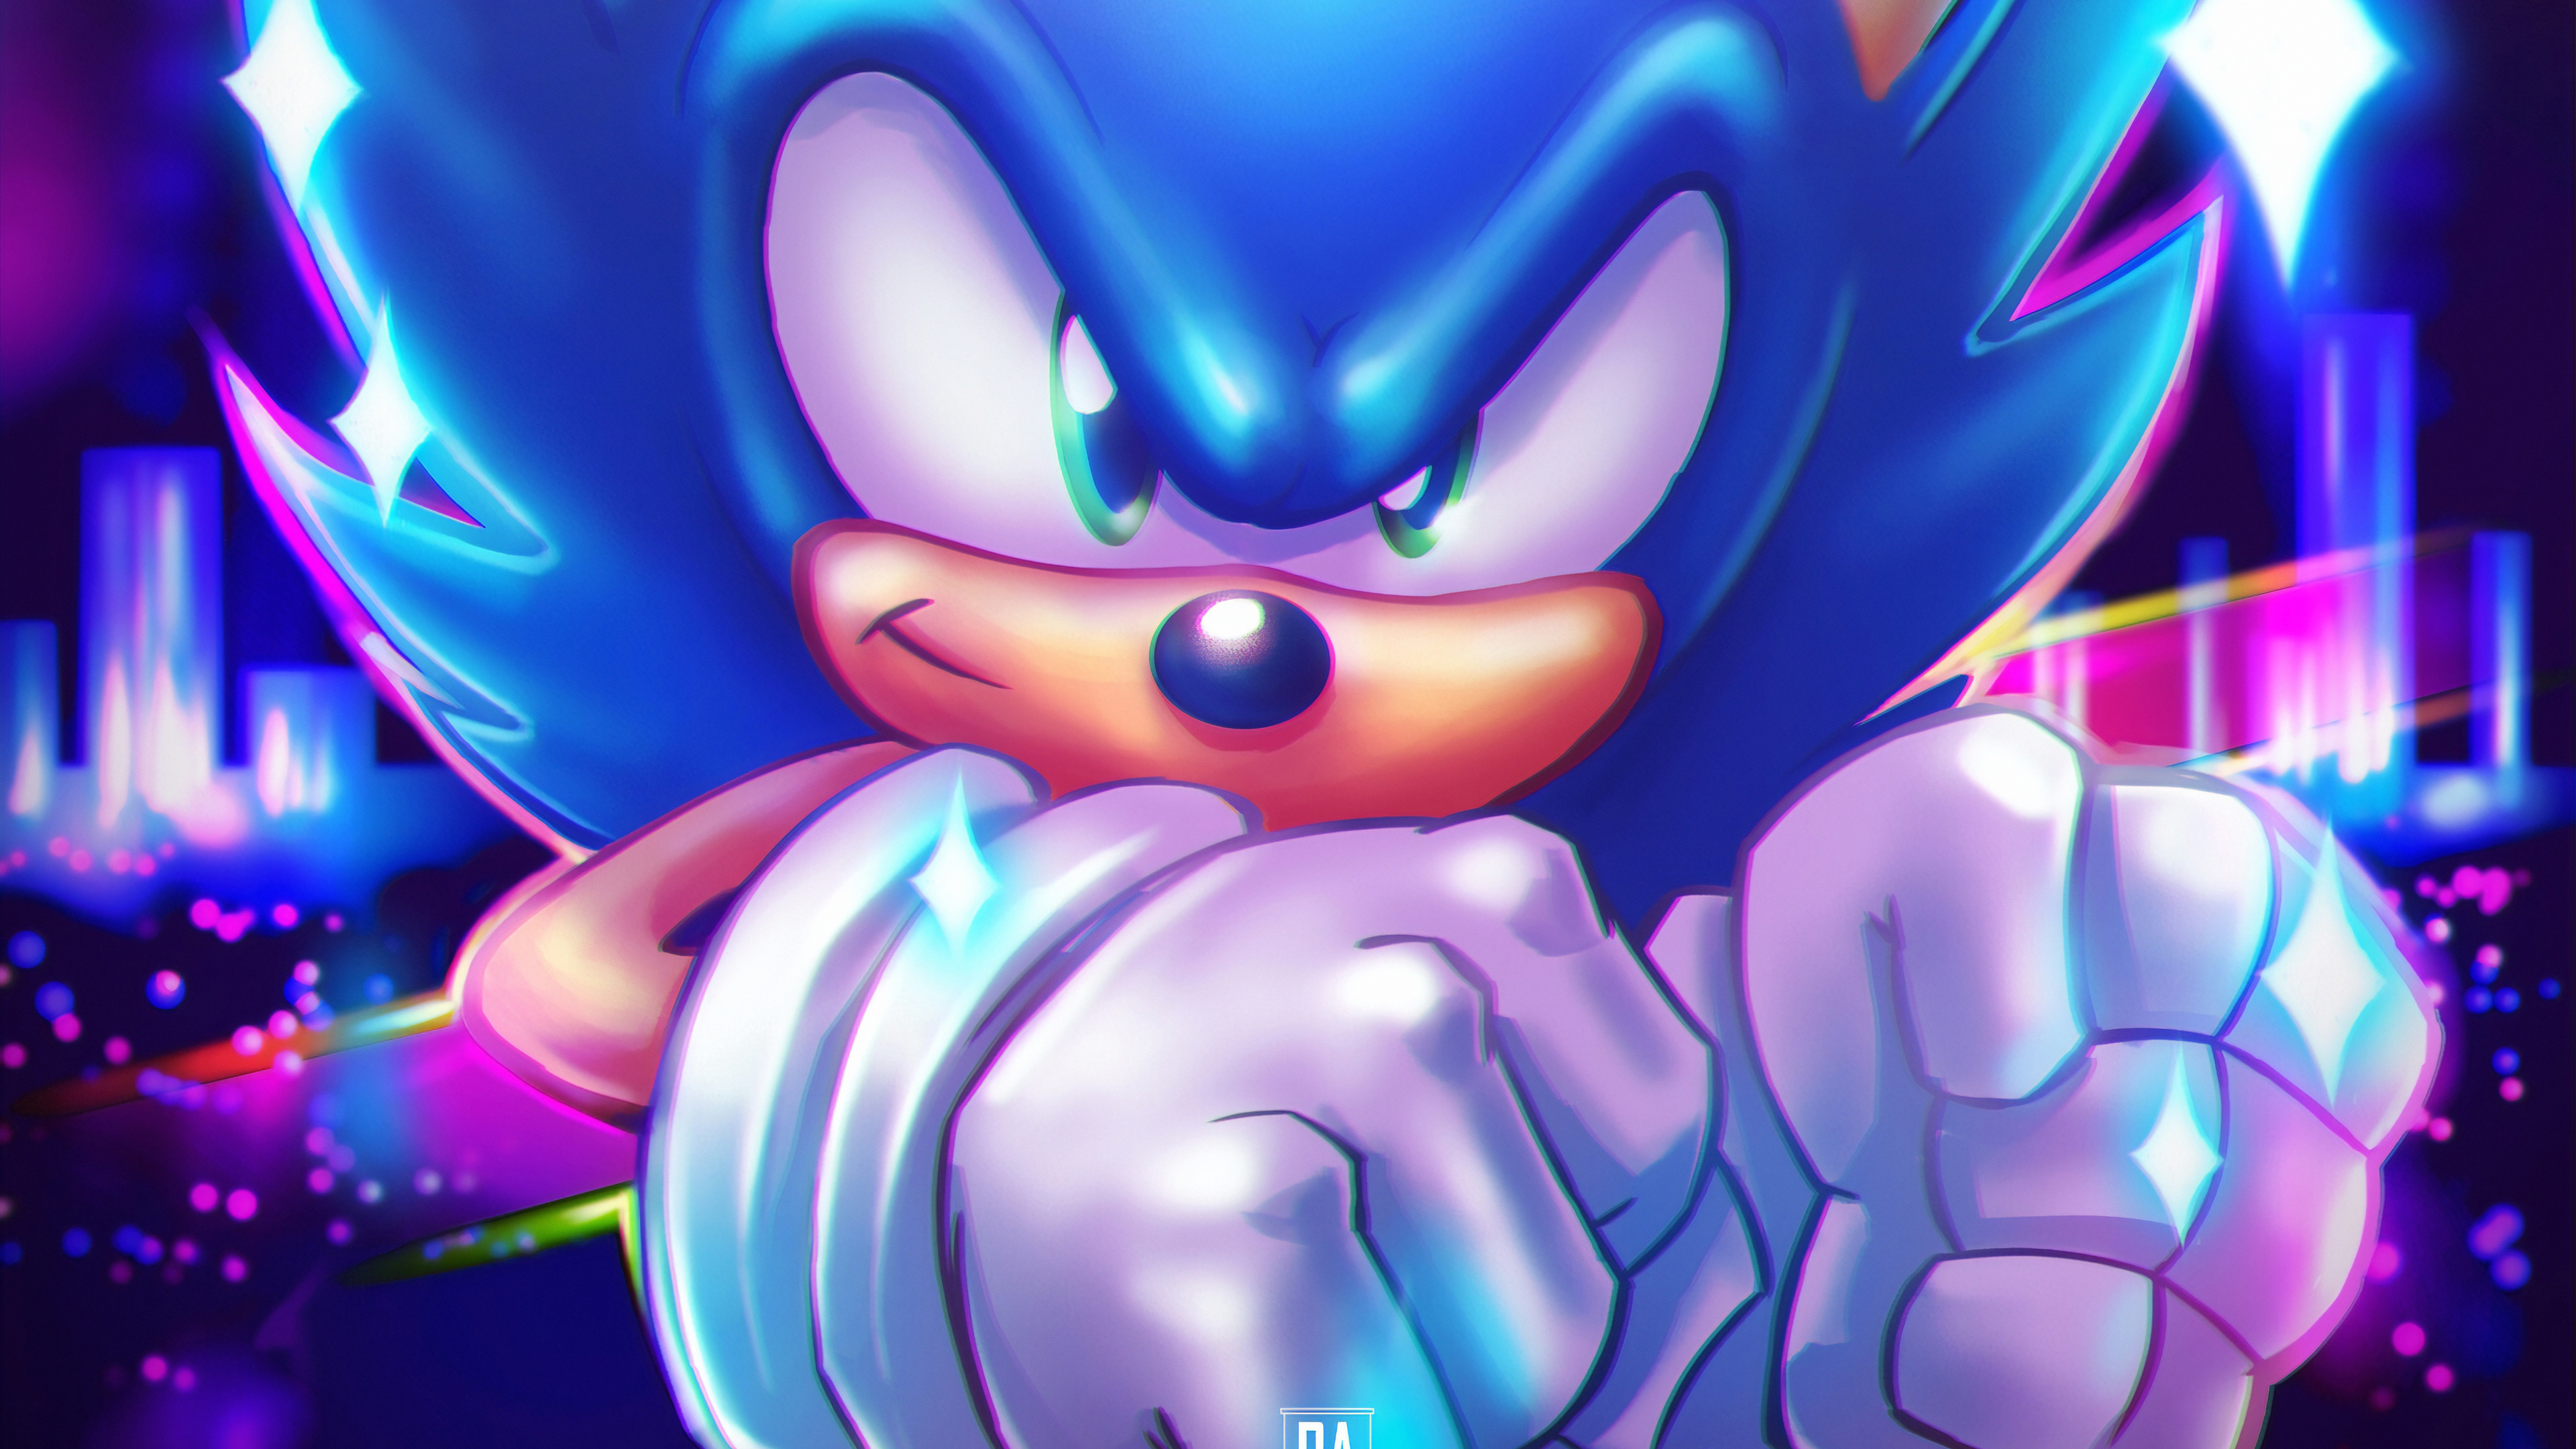 Sonic The Hedgehog 4k Ultra Hd Wallpaper Background Image